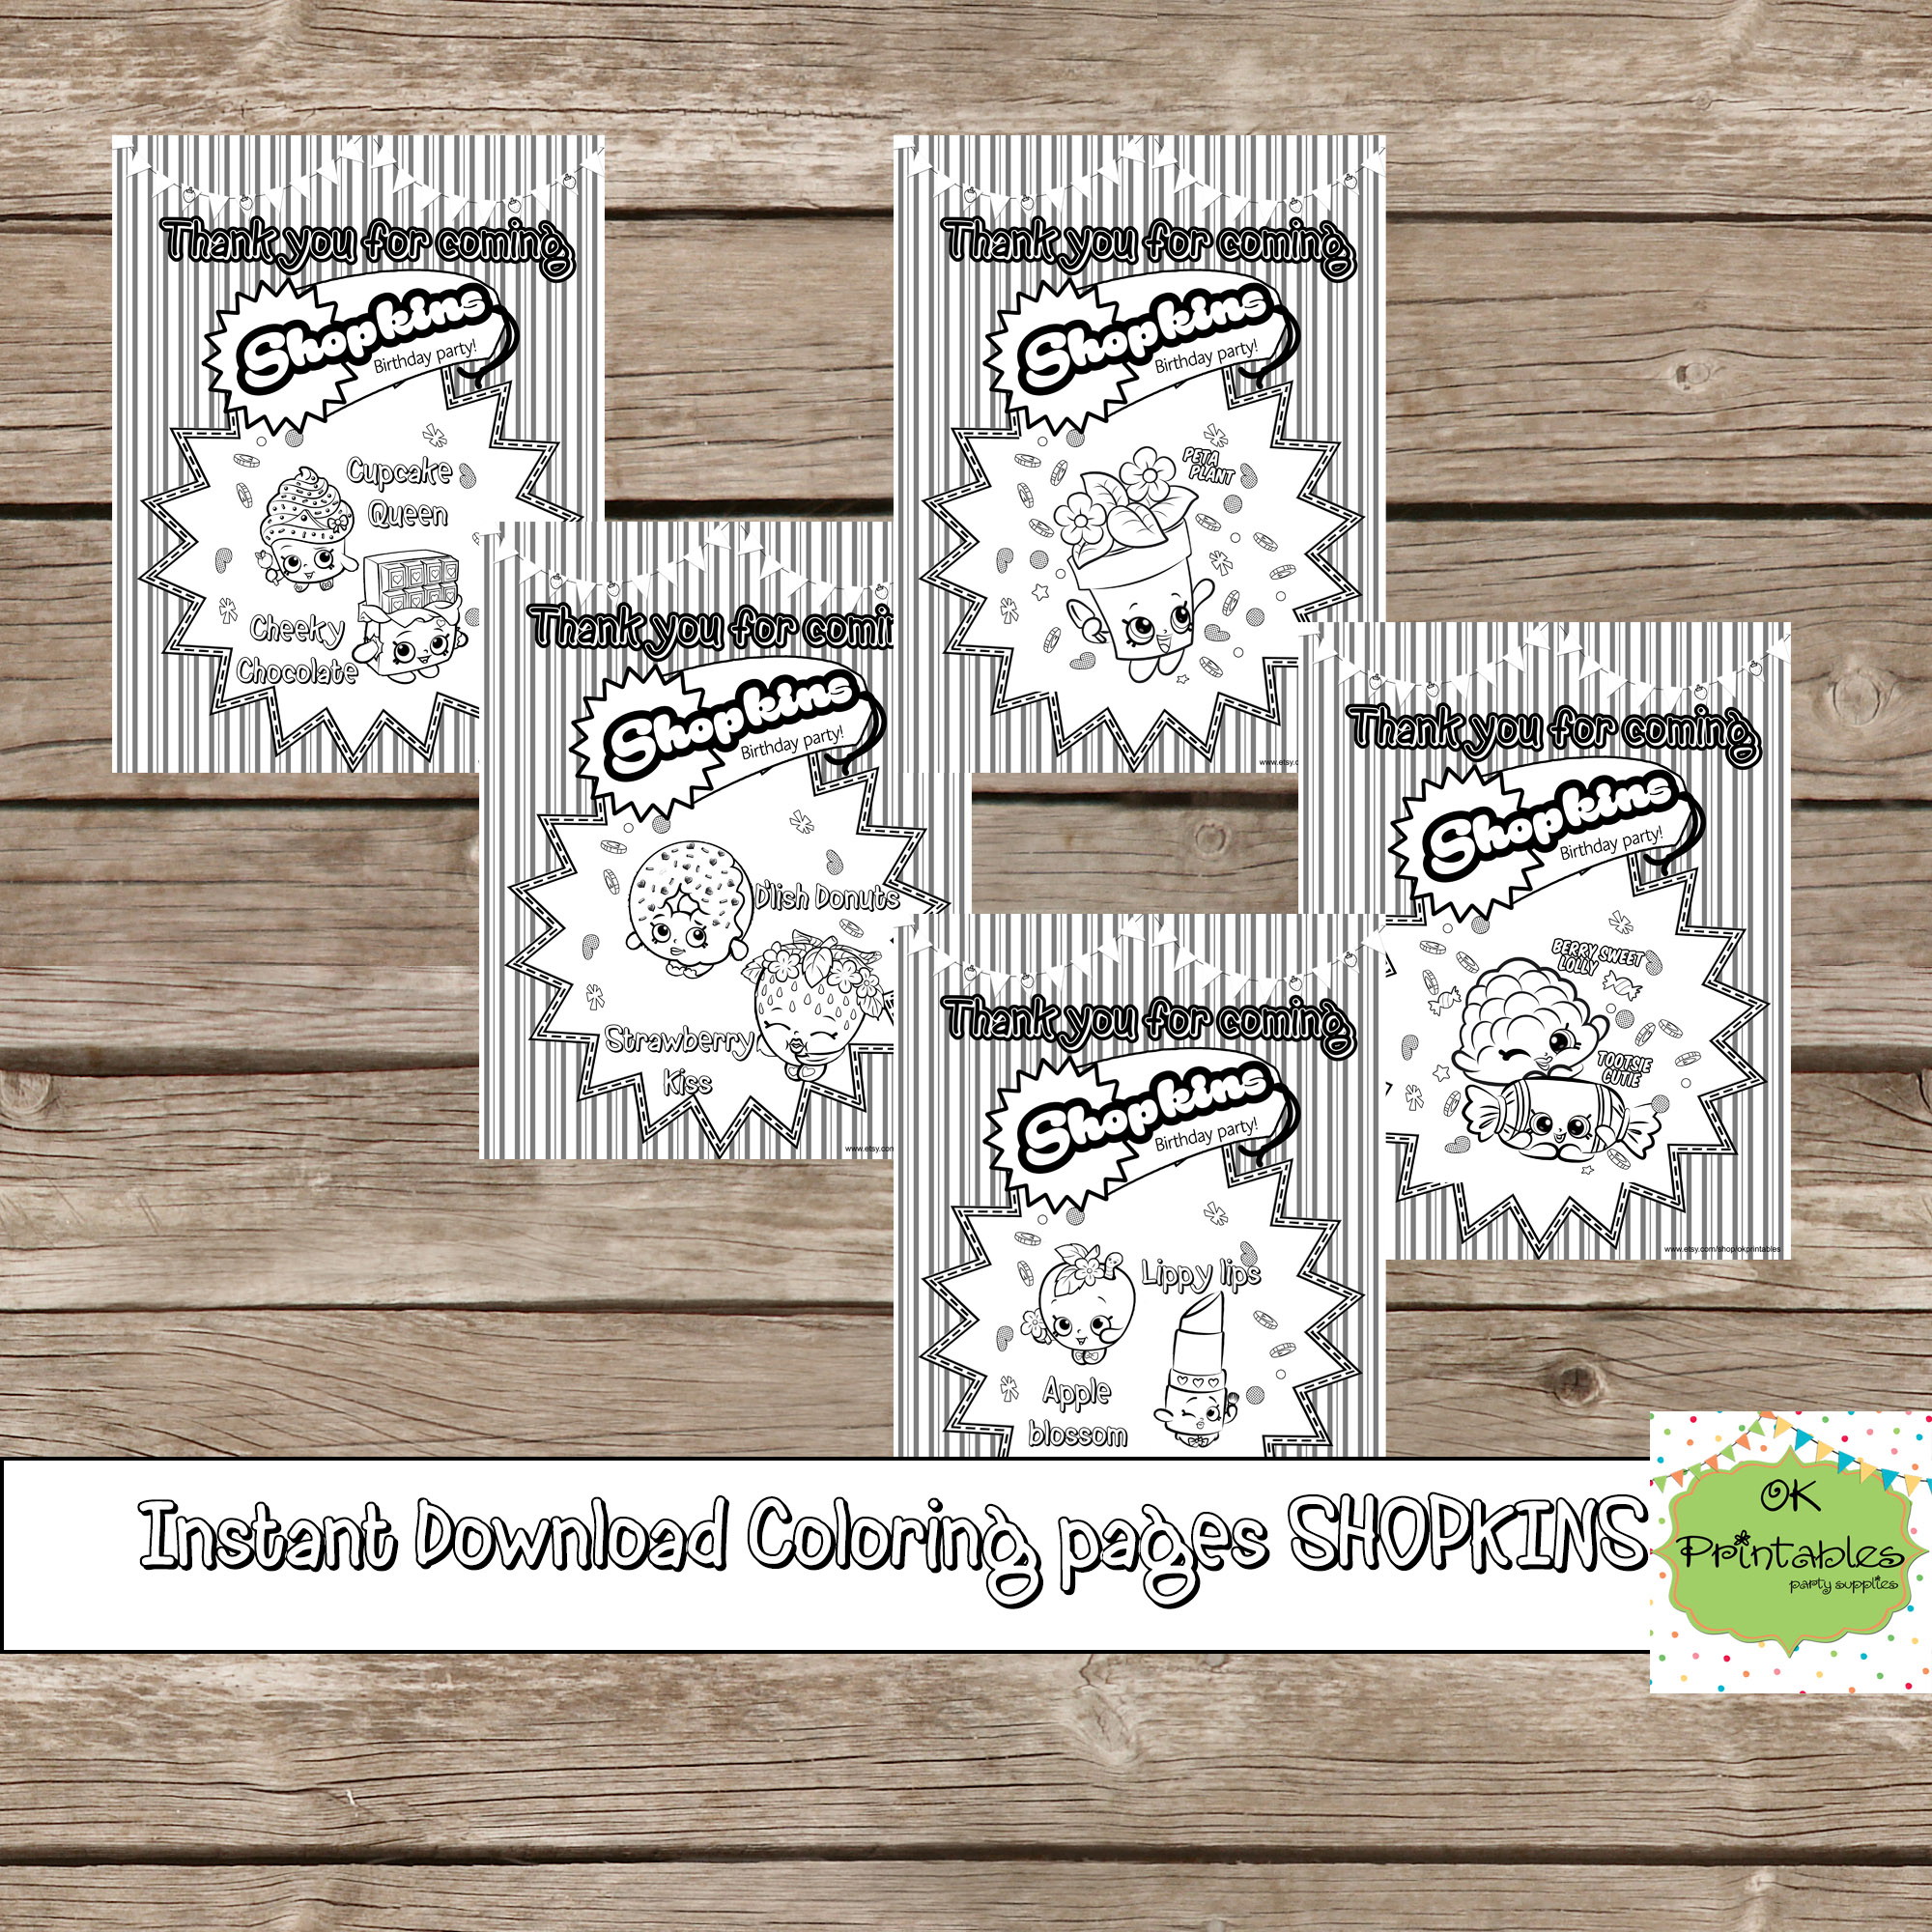 Shopkins coloring pages 5 digital printable children birthday souvenirs shopkins birthday coloring pages thank you for coming on storenvy